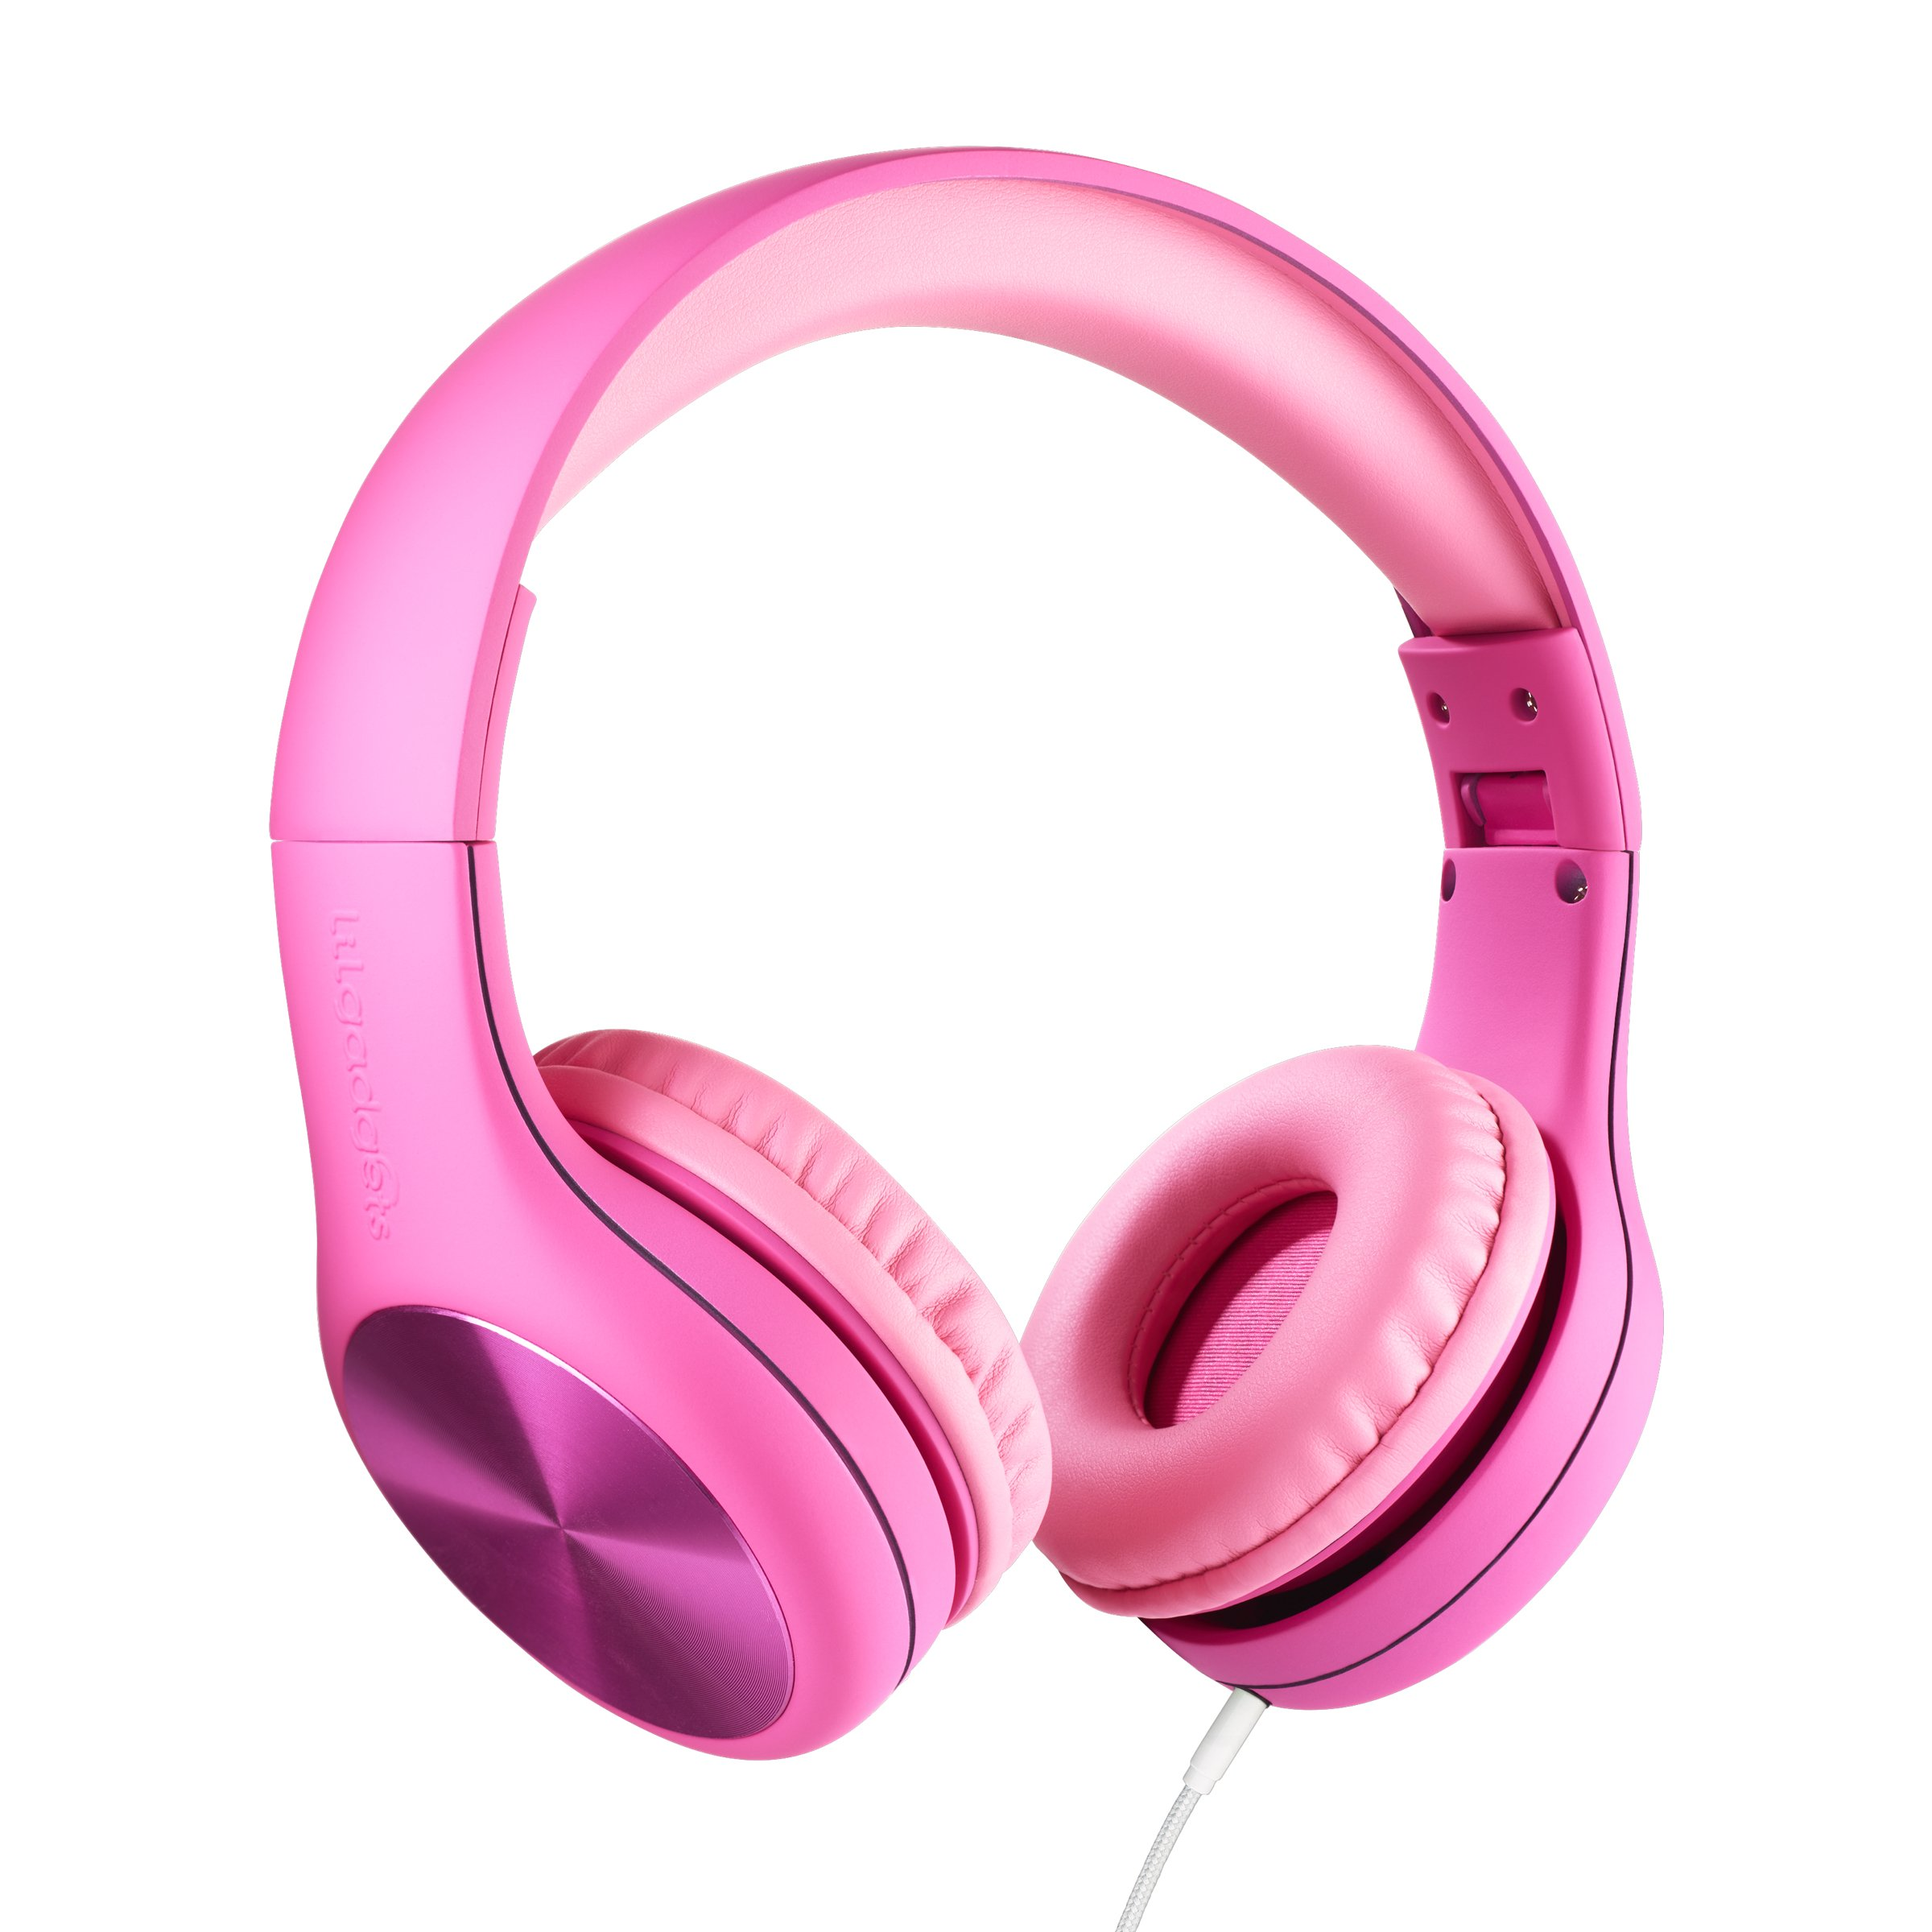 New! LilGadgets Connect+ Pro Premium Volume Limited Wired Headphones with SharePort for Children/Kids (Pink) by LilGadgets